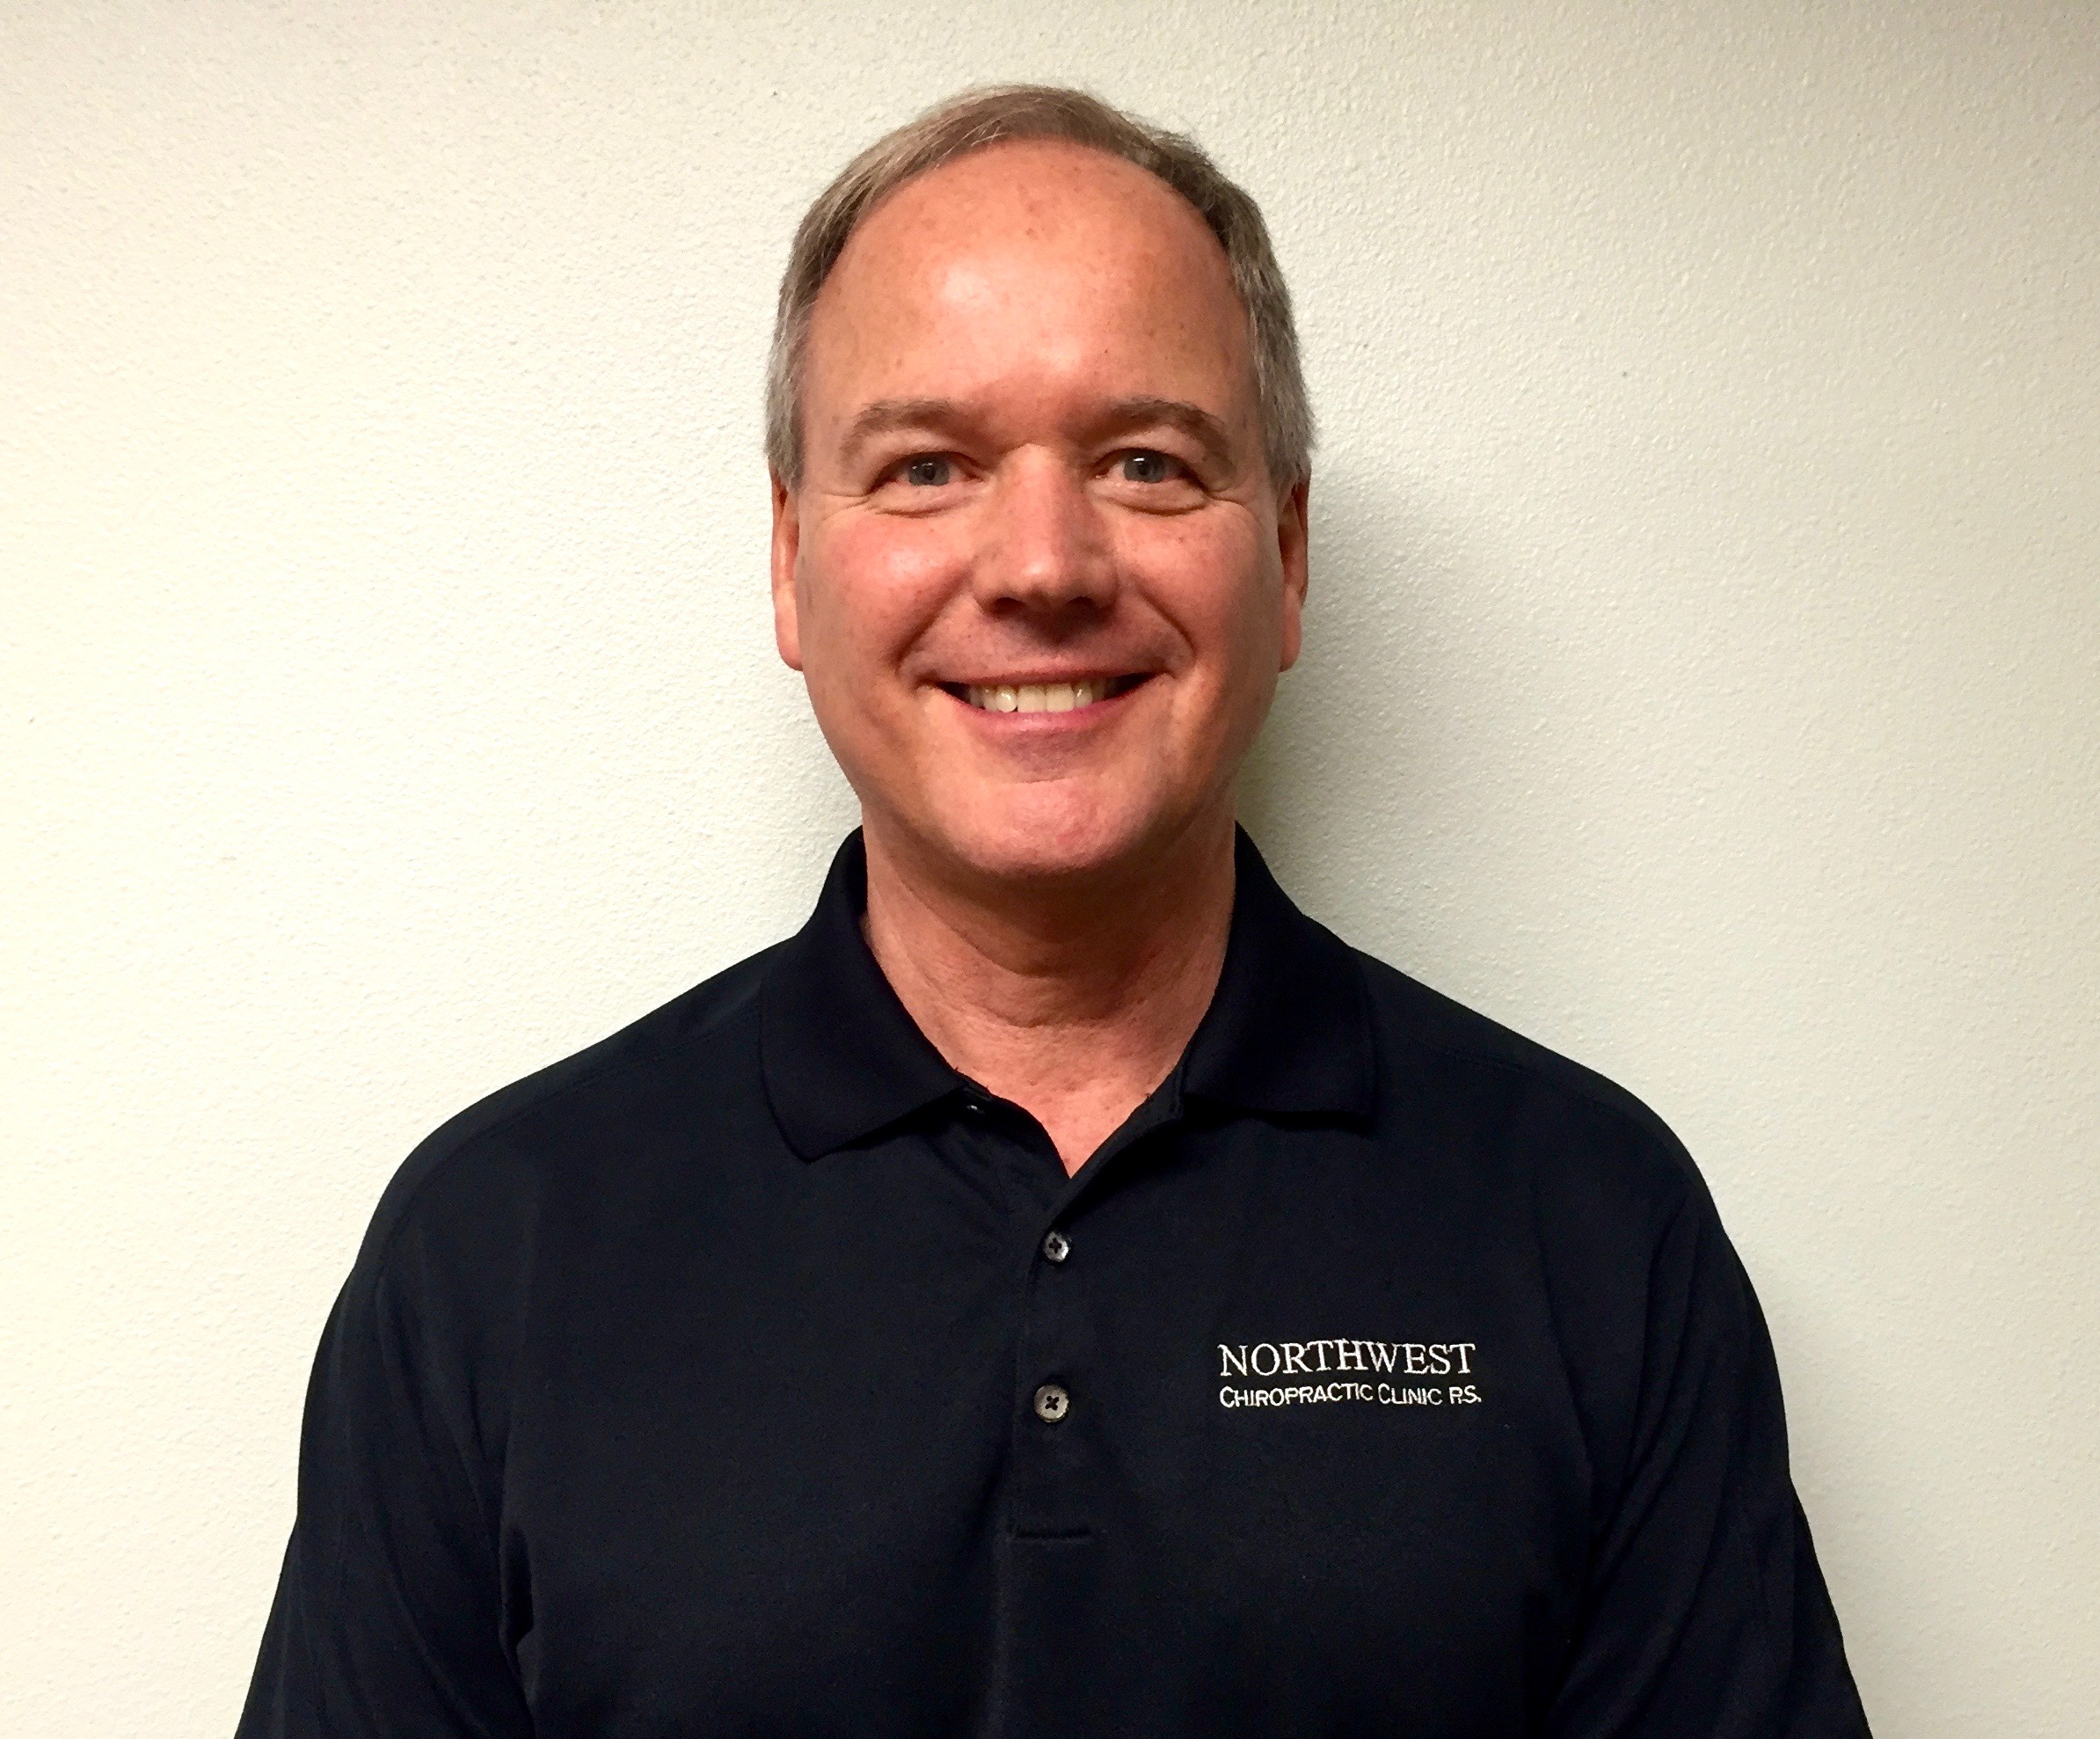 Dr. Jeff Rindal - Northwest Chiropractic Clinic